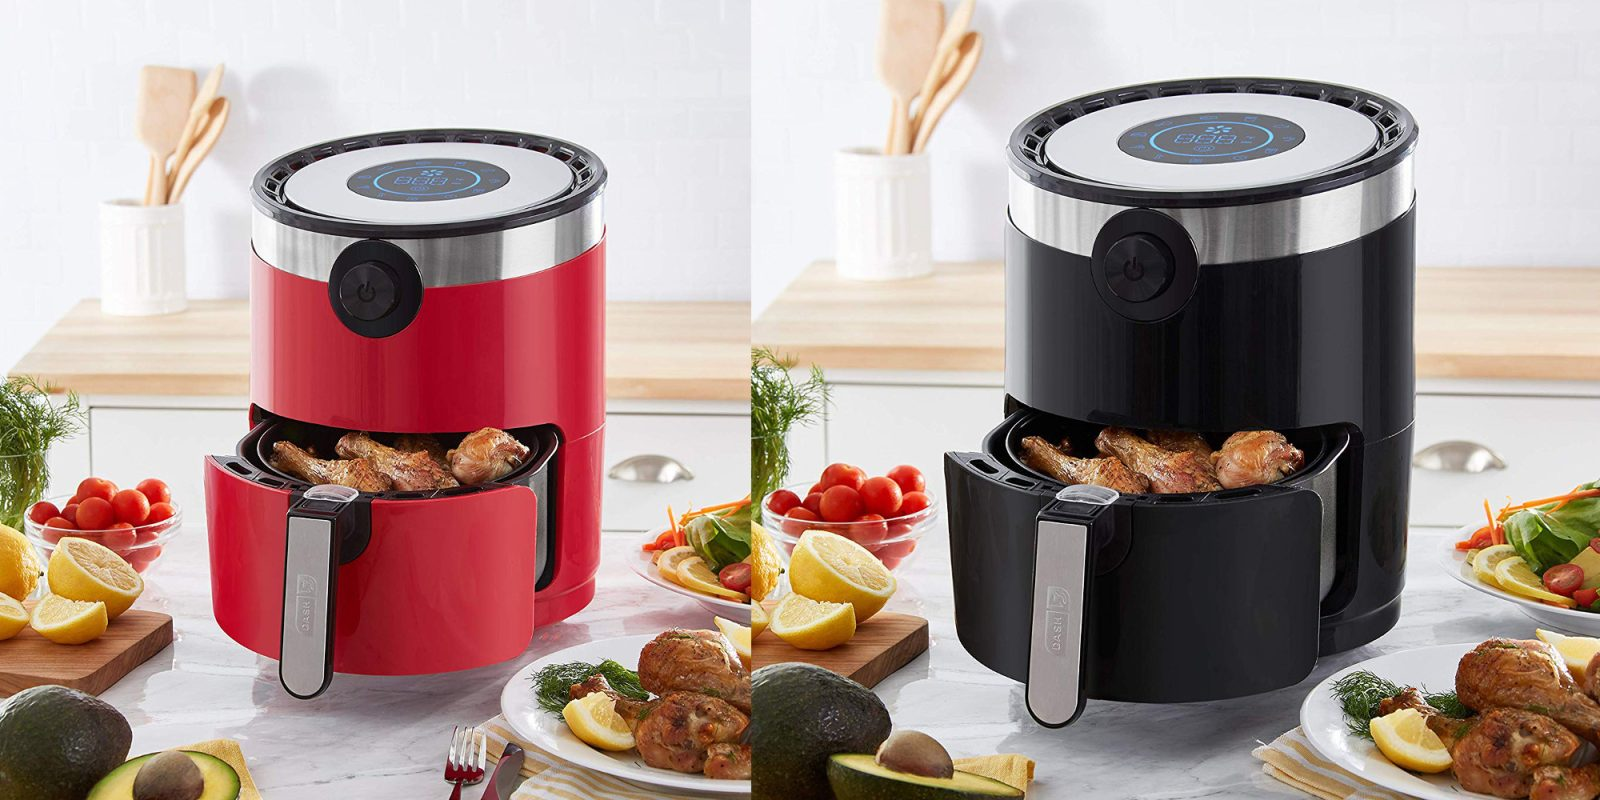 Dash AirCrisp cooker hits its Amazon all-time low at $70 (Reg. $100) + more